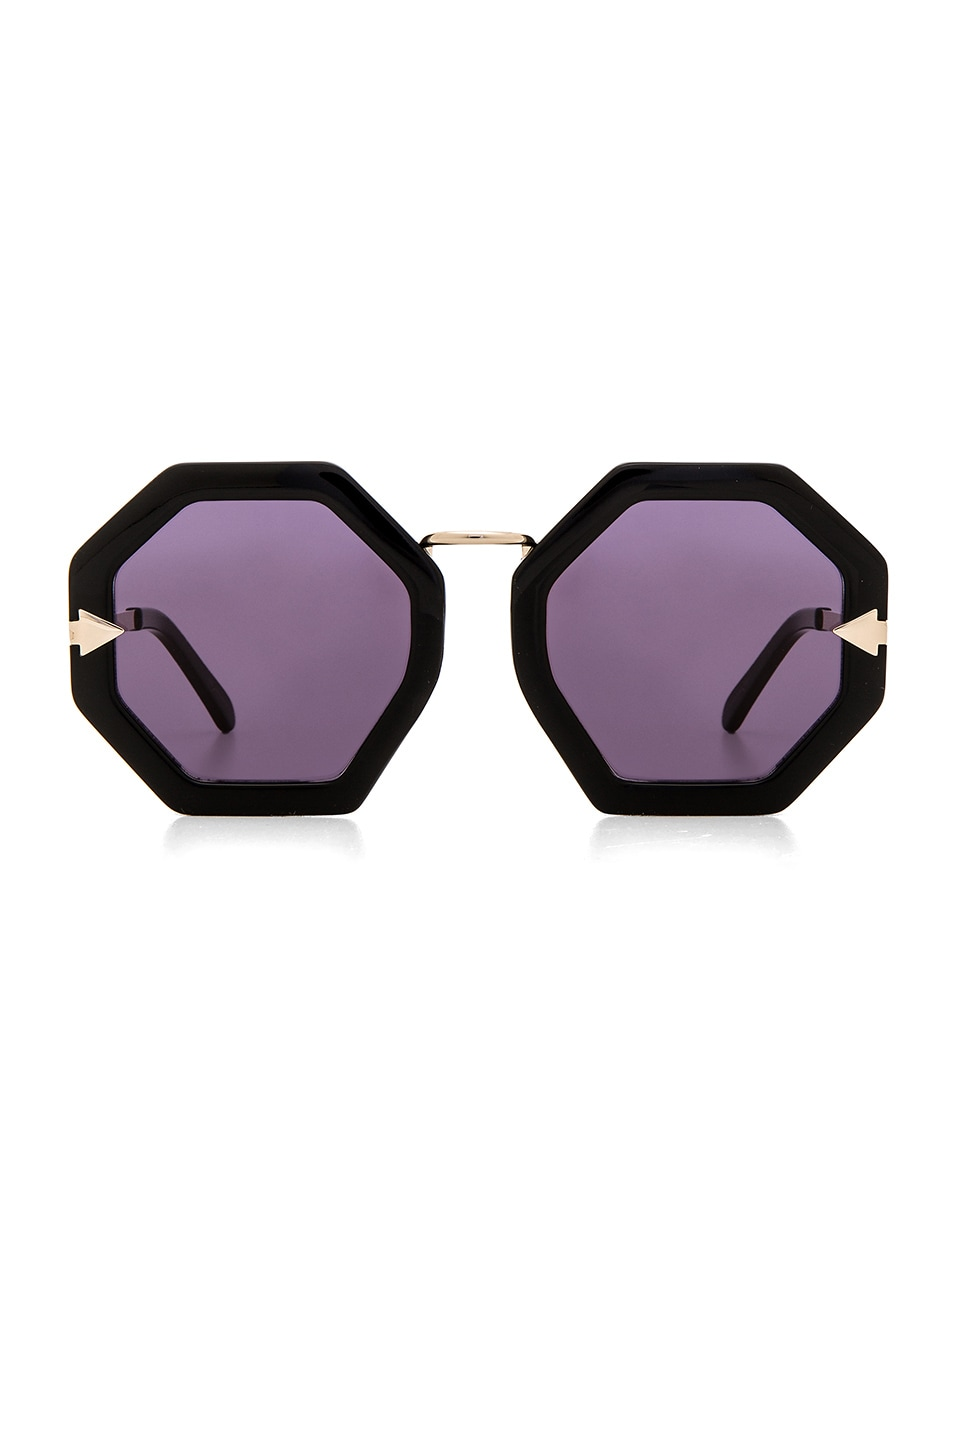 Karen Walker Moon Disco in Black & Gold